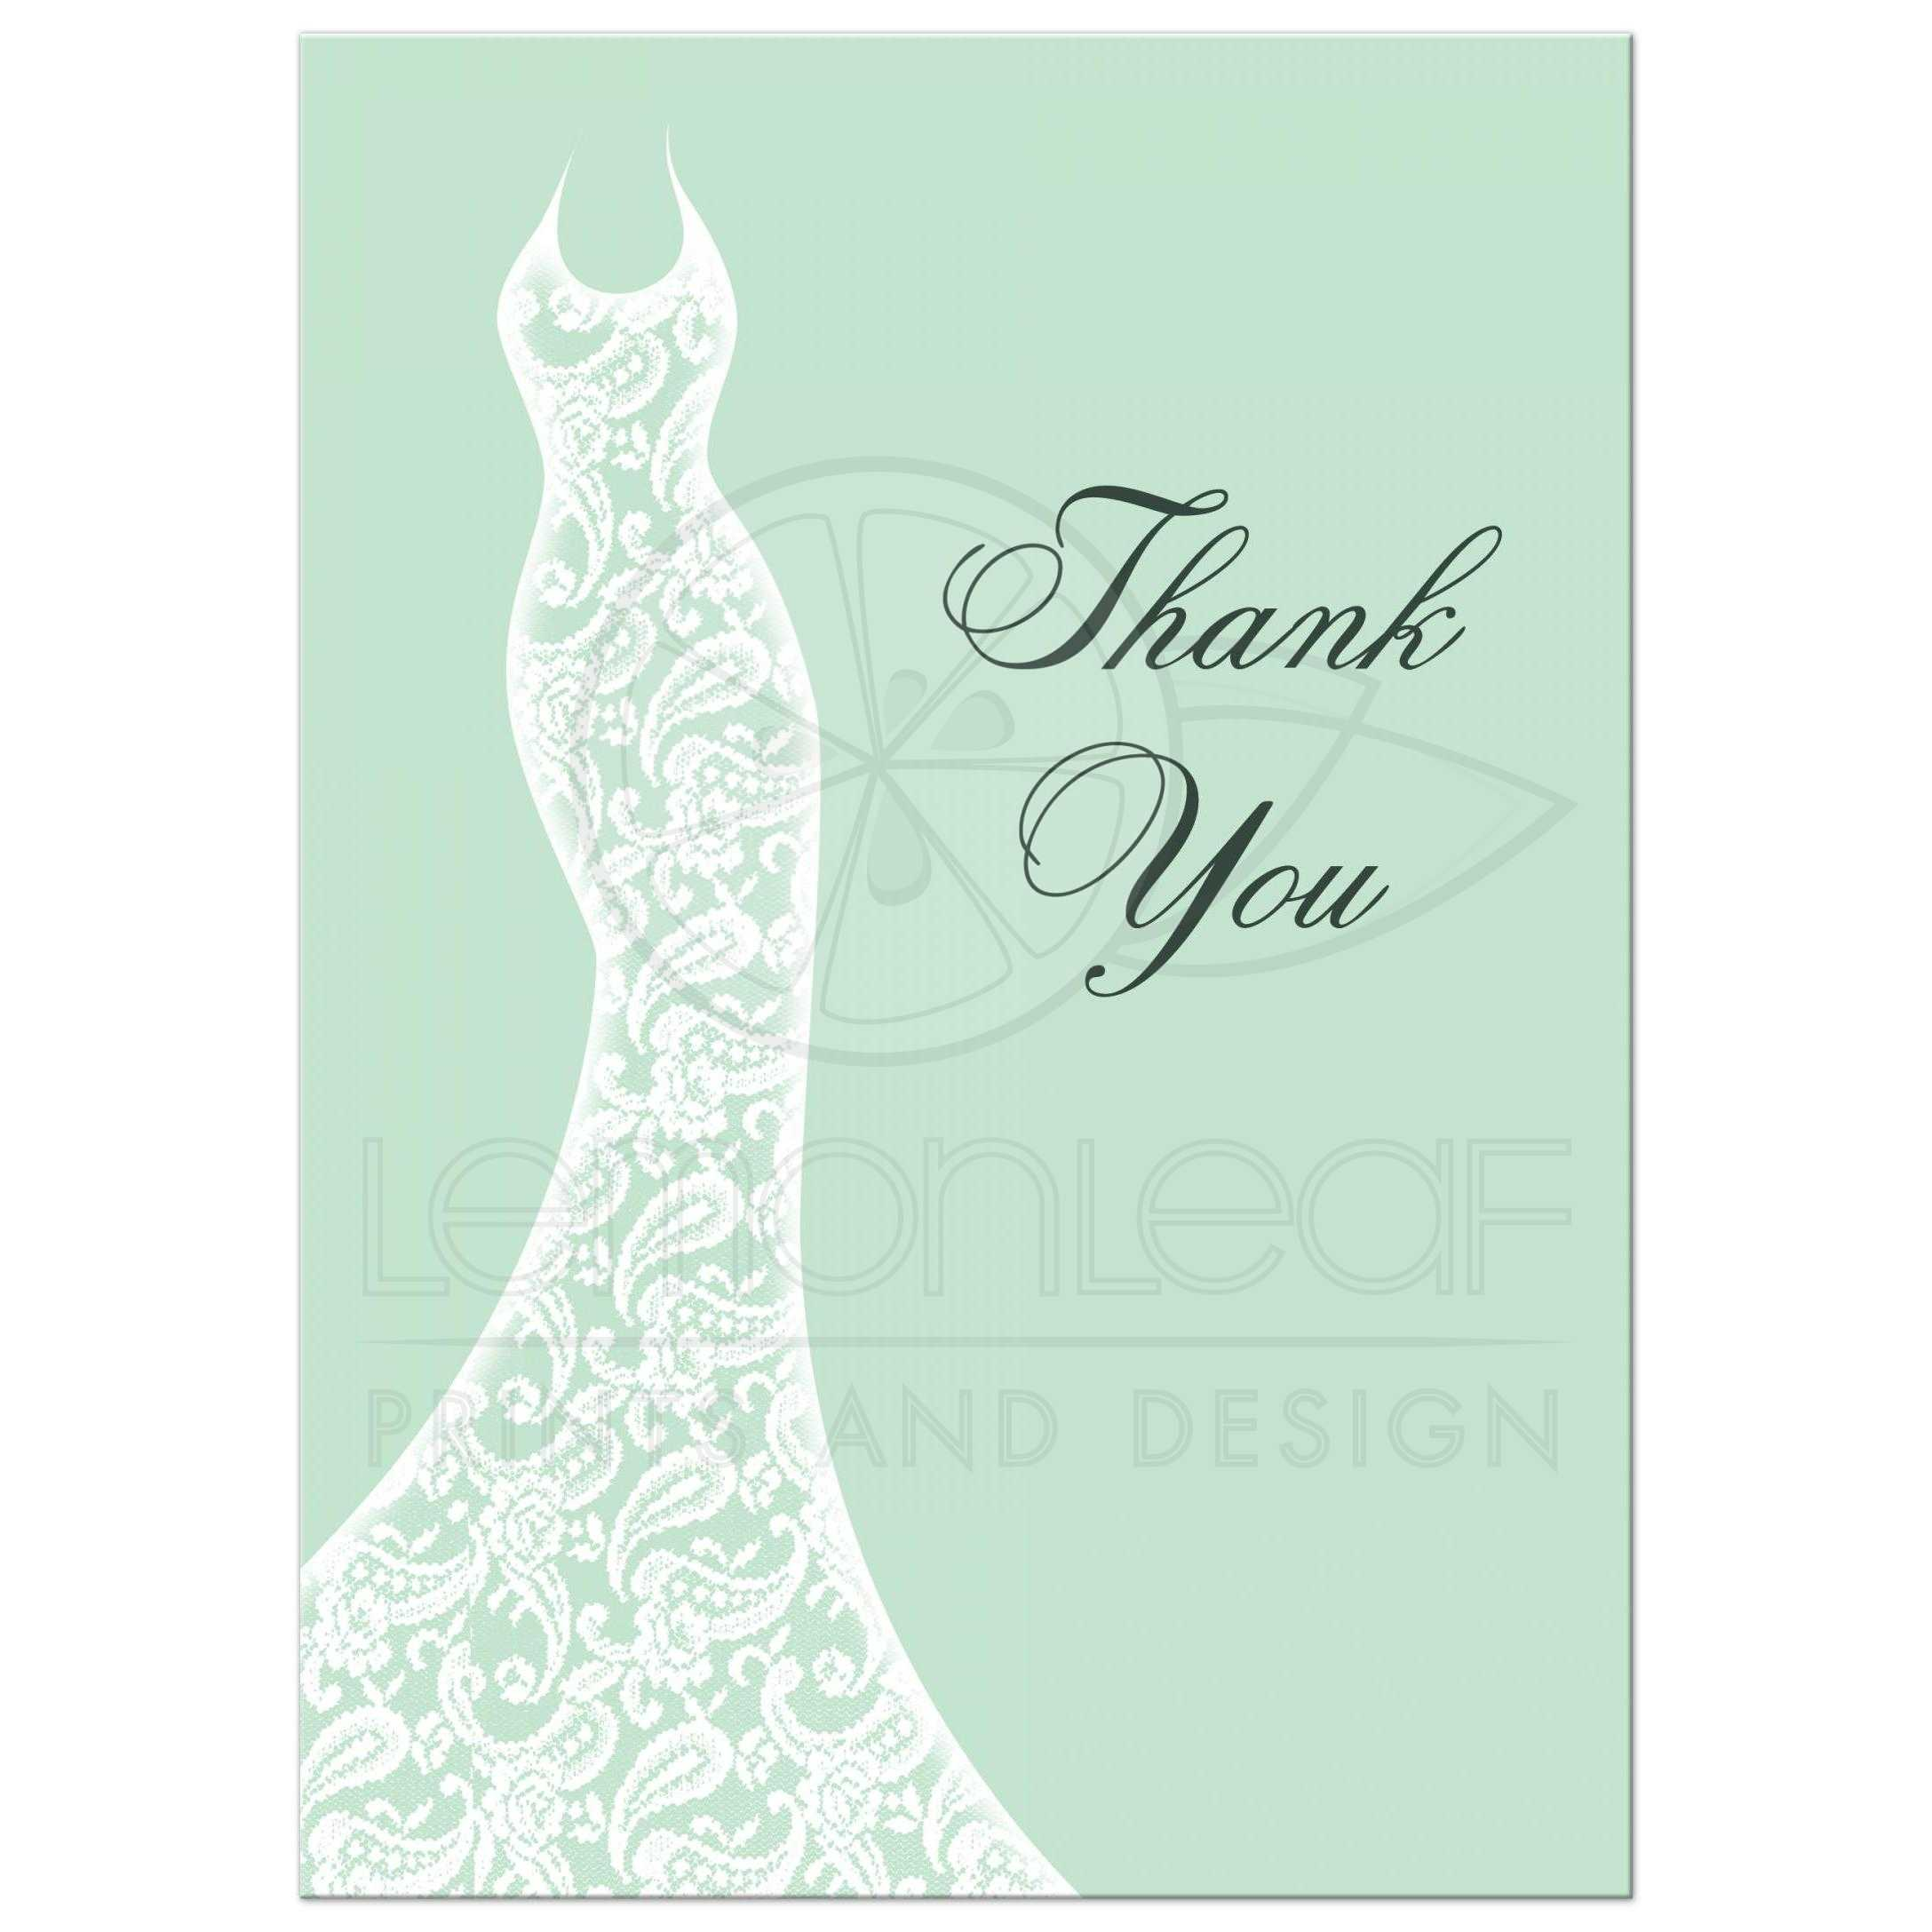 Thrifty Mint Bridal Shower Thank You Card Bridal Shower Thank You Card Mint Bridal Shower Thank You Cards Cheap Bridal Shower Thank You Cards Sayings bridal shower Bridal Shower Thank You Cards